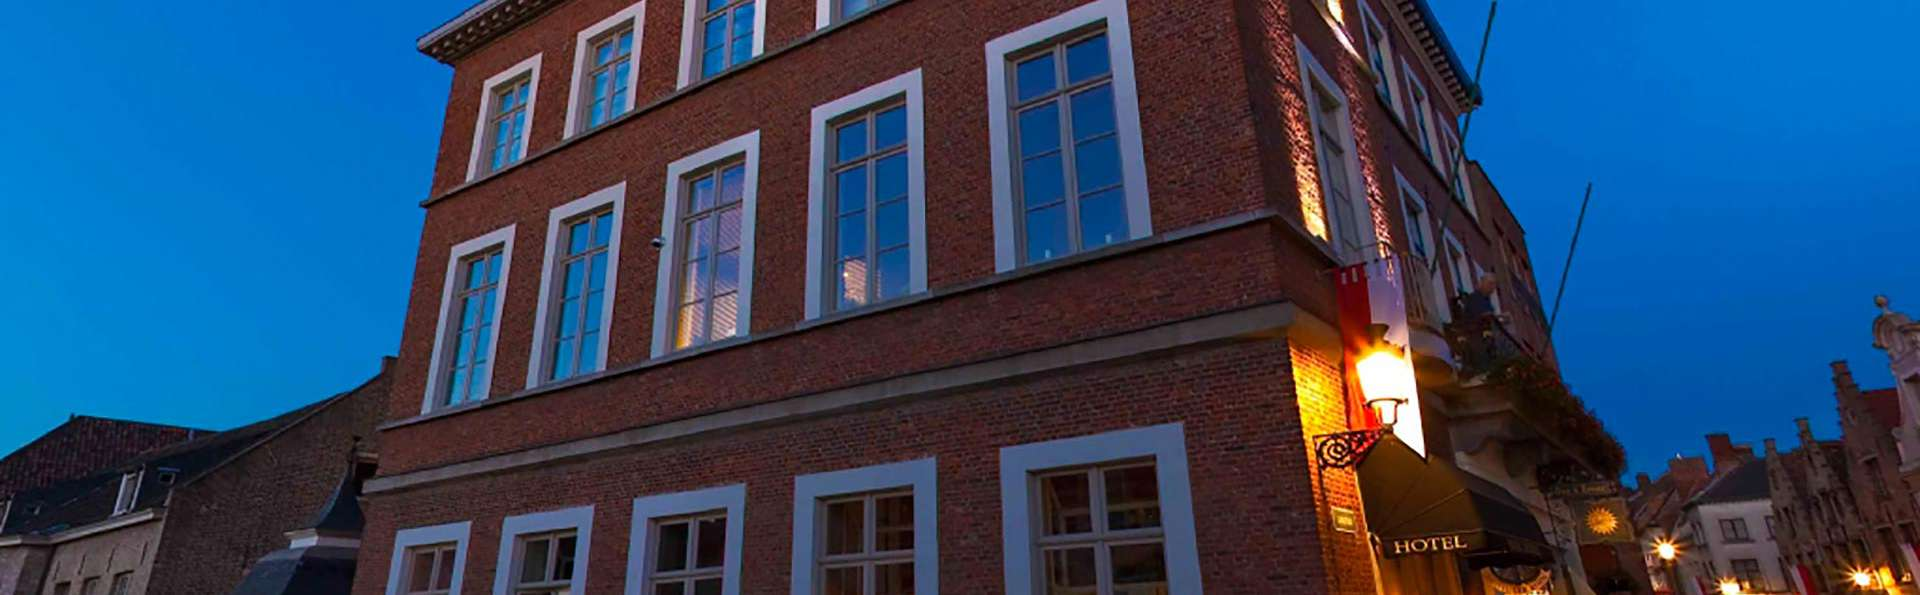 Canalview hotel Ter Reien - EDIT_front1.jpg